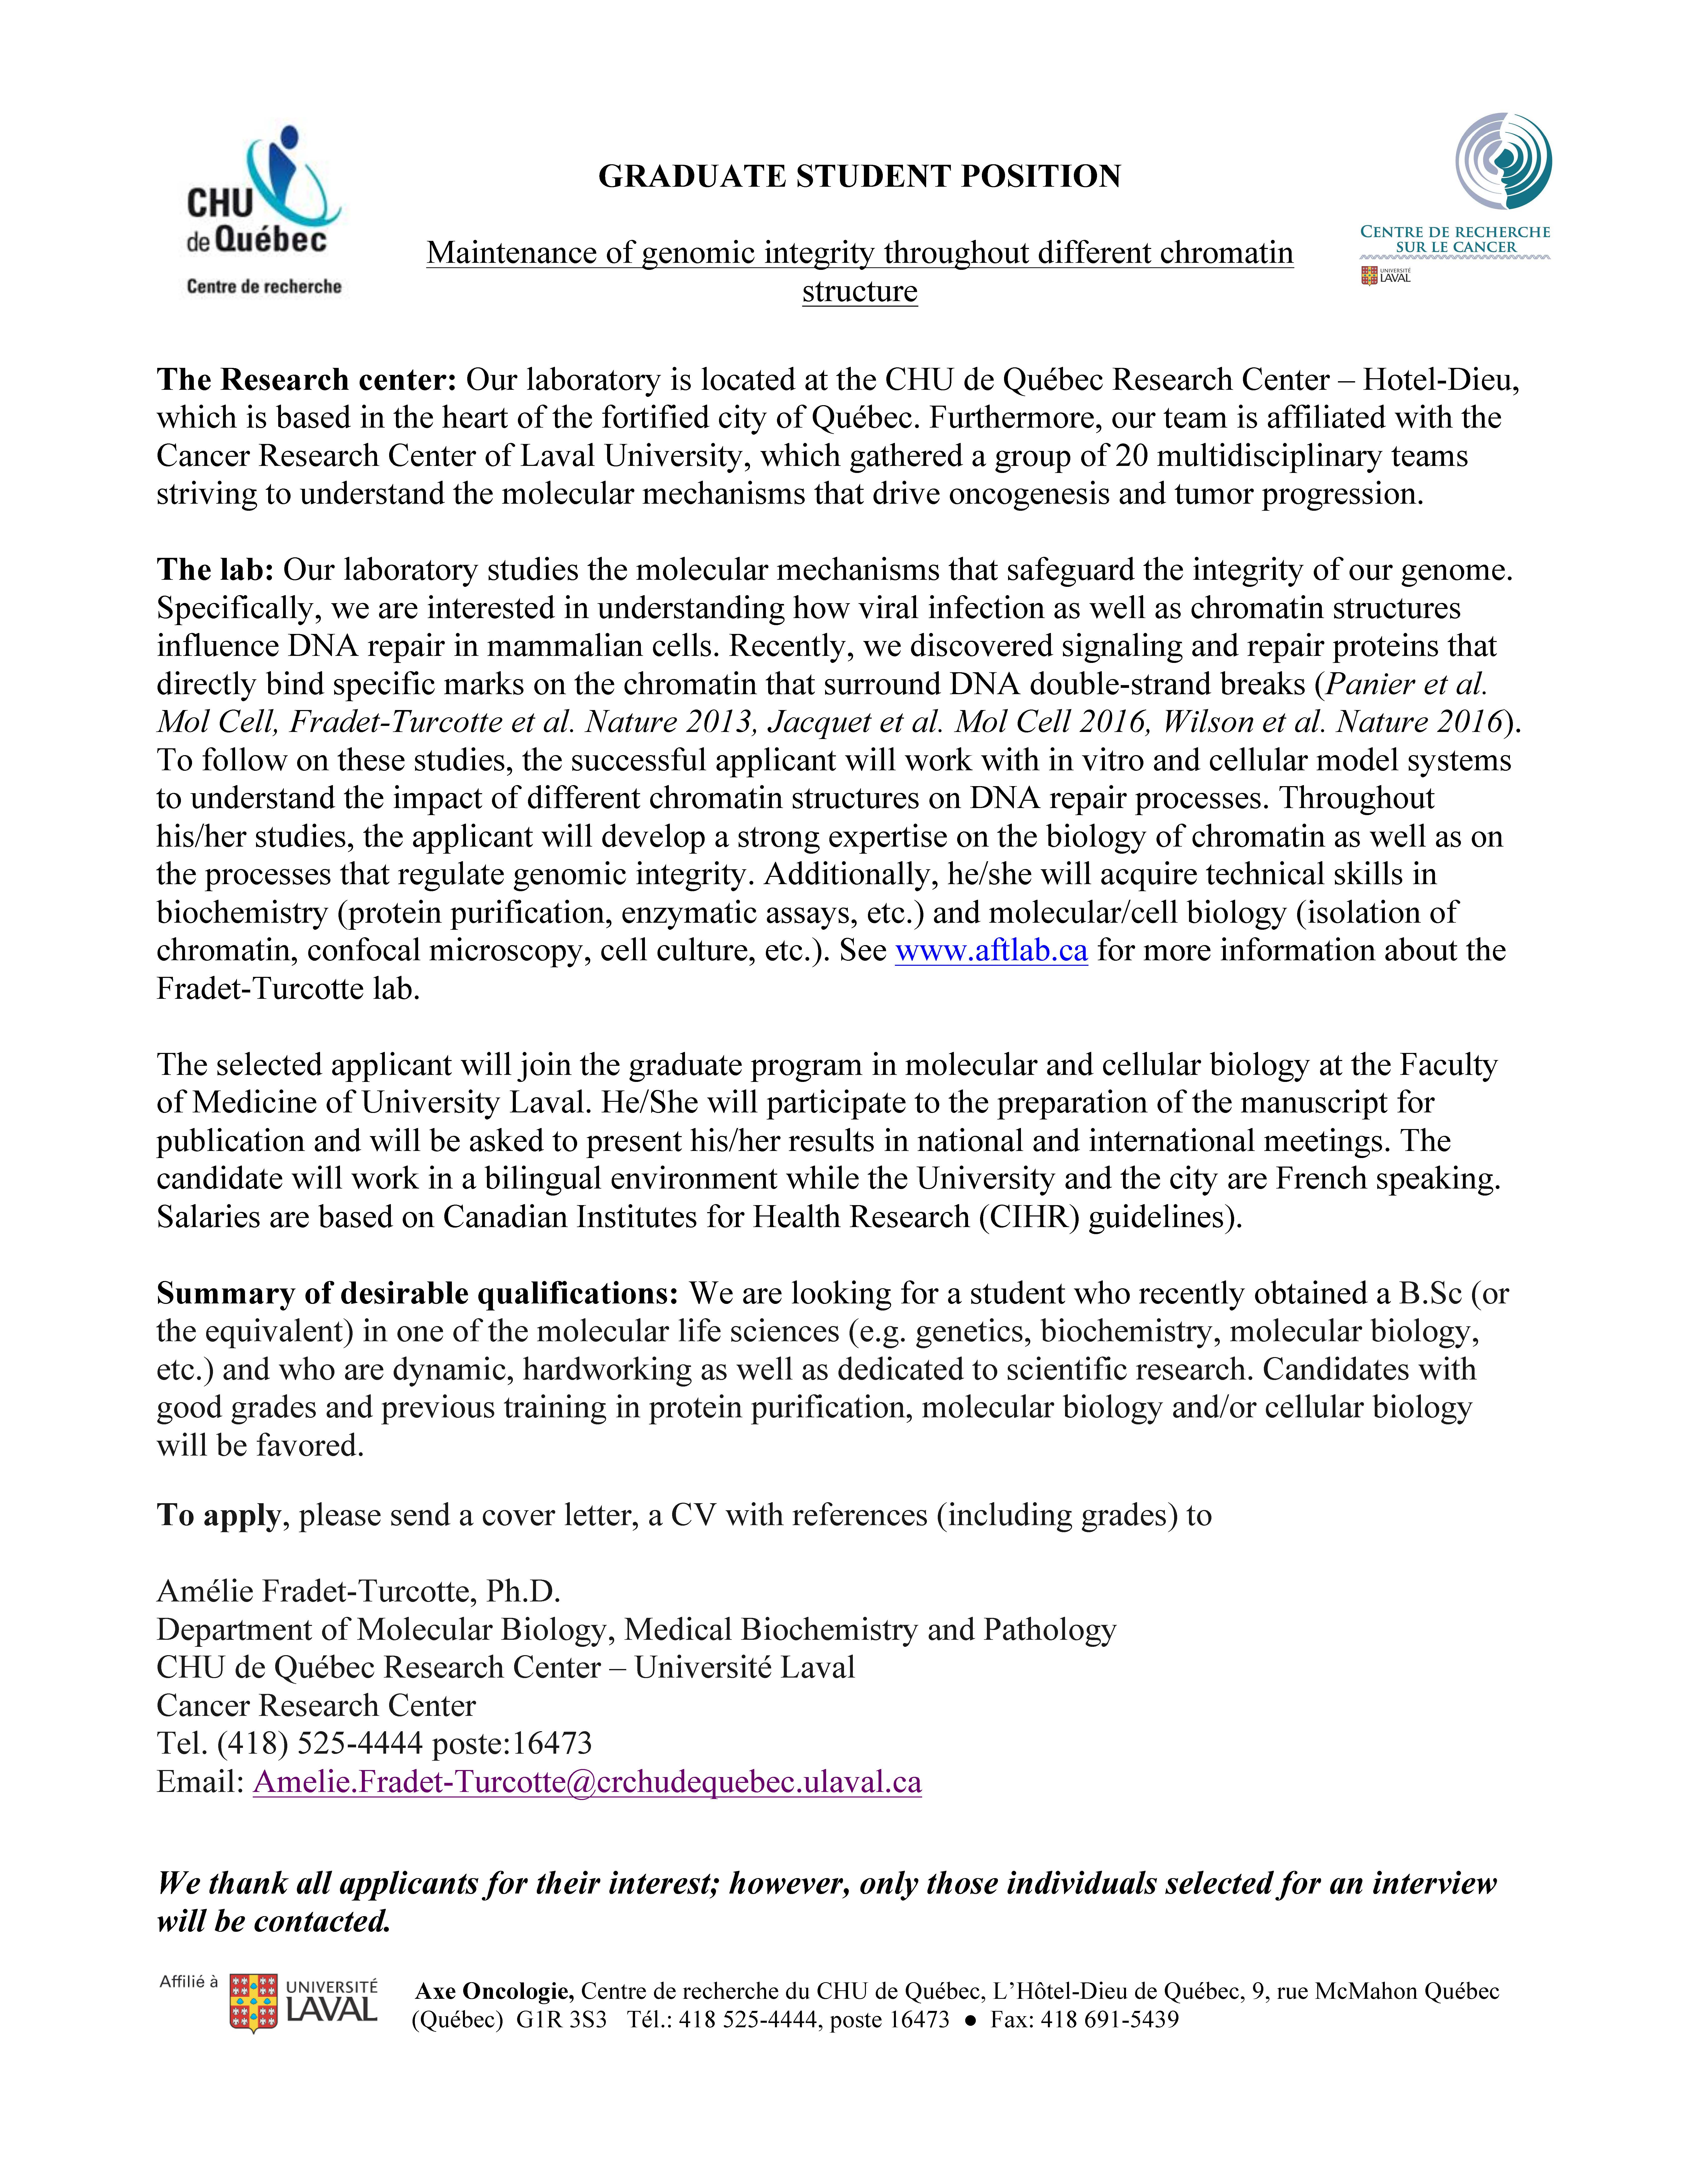 Graduate student position available at the department of molecular graduate student position available at the department of molecular biology chu de qubec research center canada yelopaper Choice Image